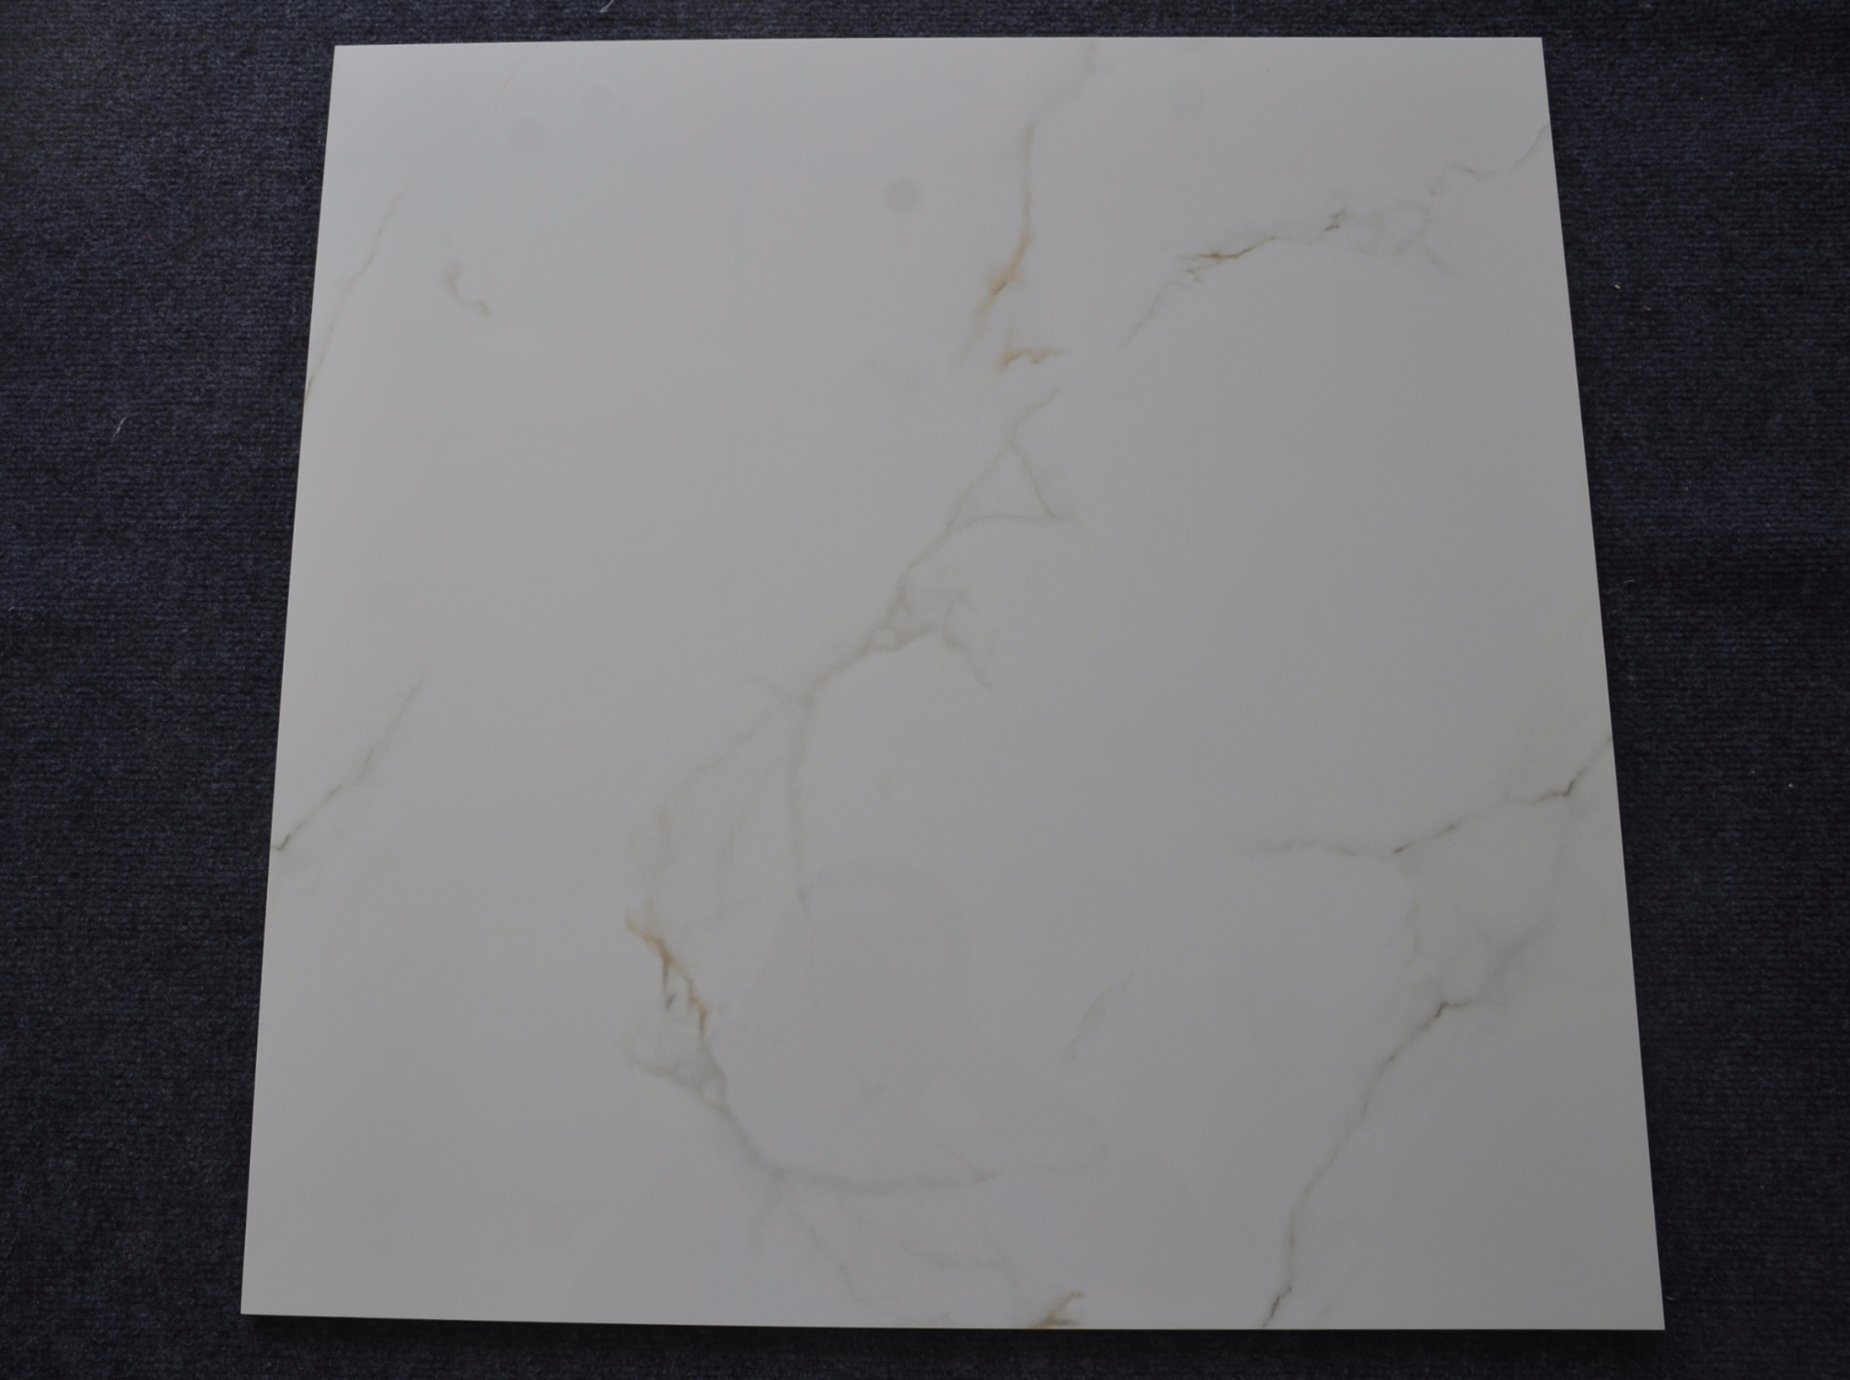 China 60x60 full glazed wall and floor tiles thin porcelain tile 60x60 full glazed wall and floor tiles thin porcelain tile dailygadgetfo Choice Image